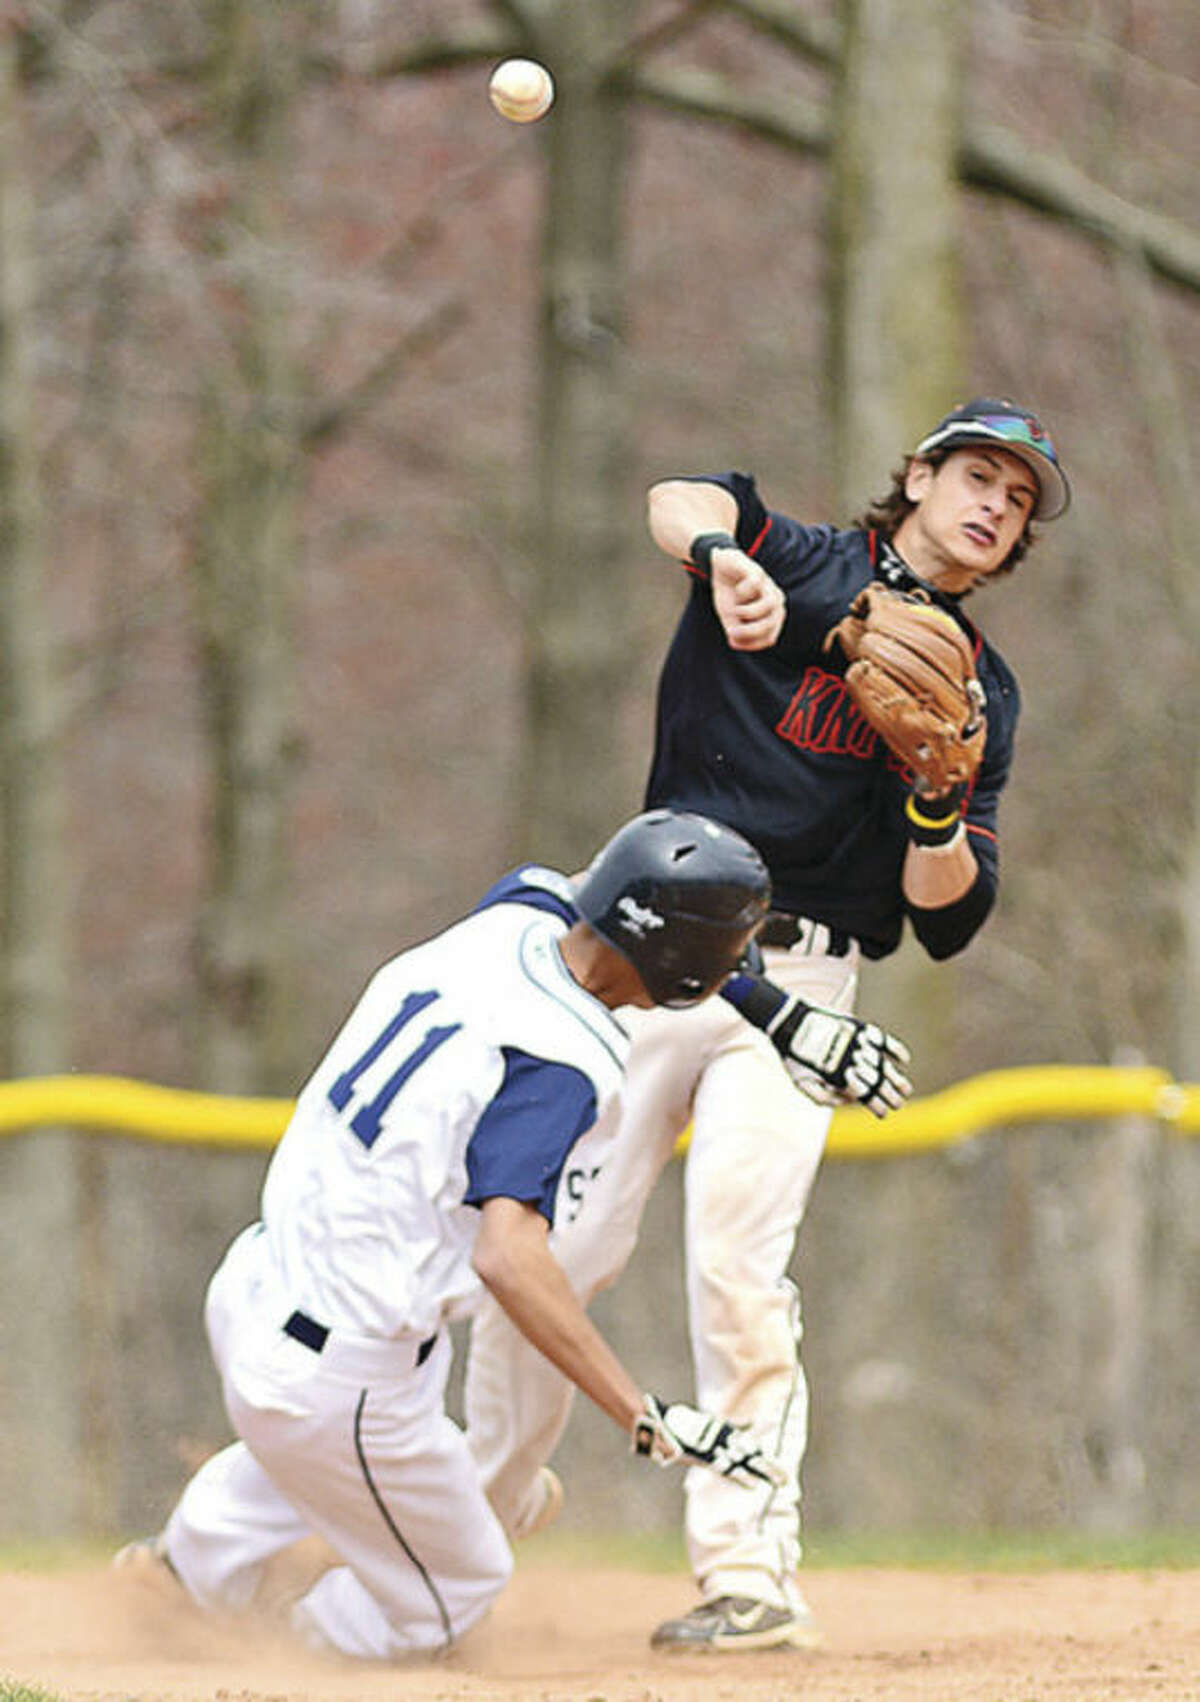 Stamford High shortstop Travis Docimo turns the double play against Staples #11 Matt Smith during their game in Westport Tuesday. Hour photo / Erik Trautmann